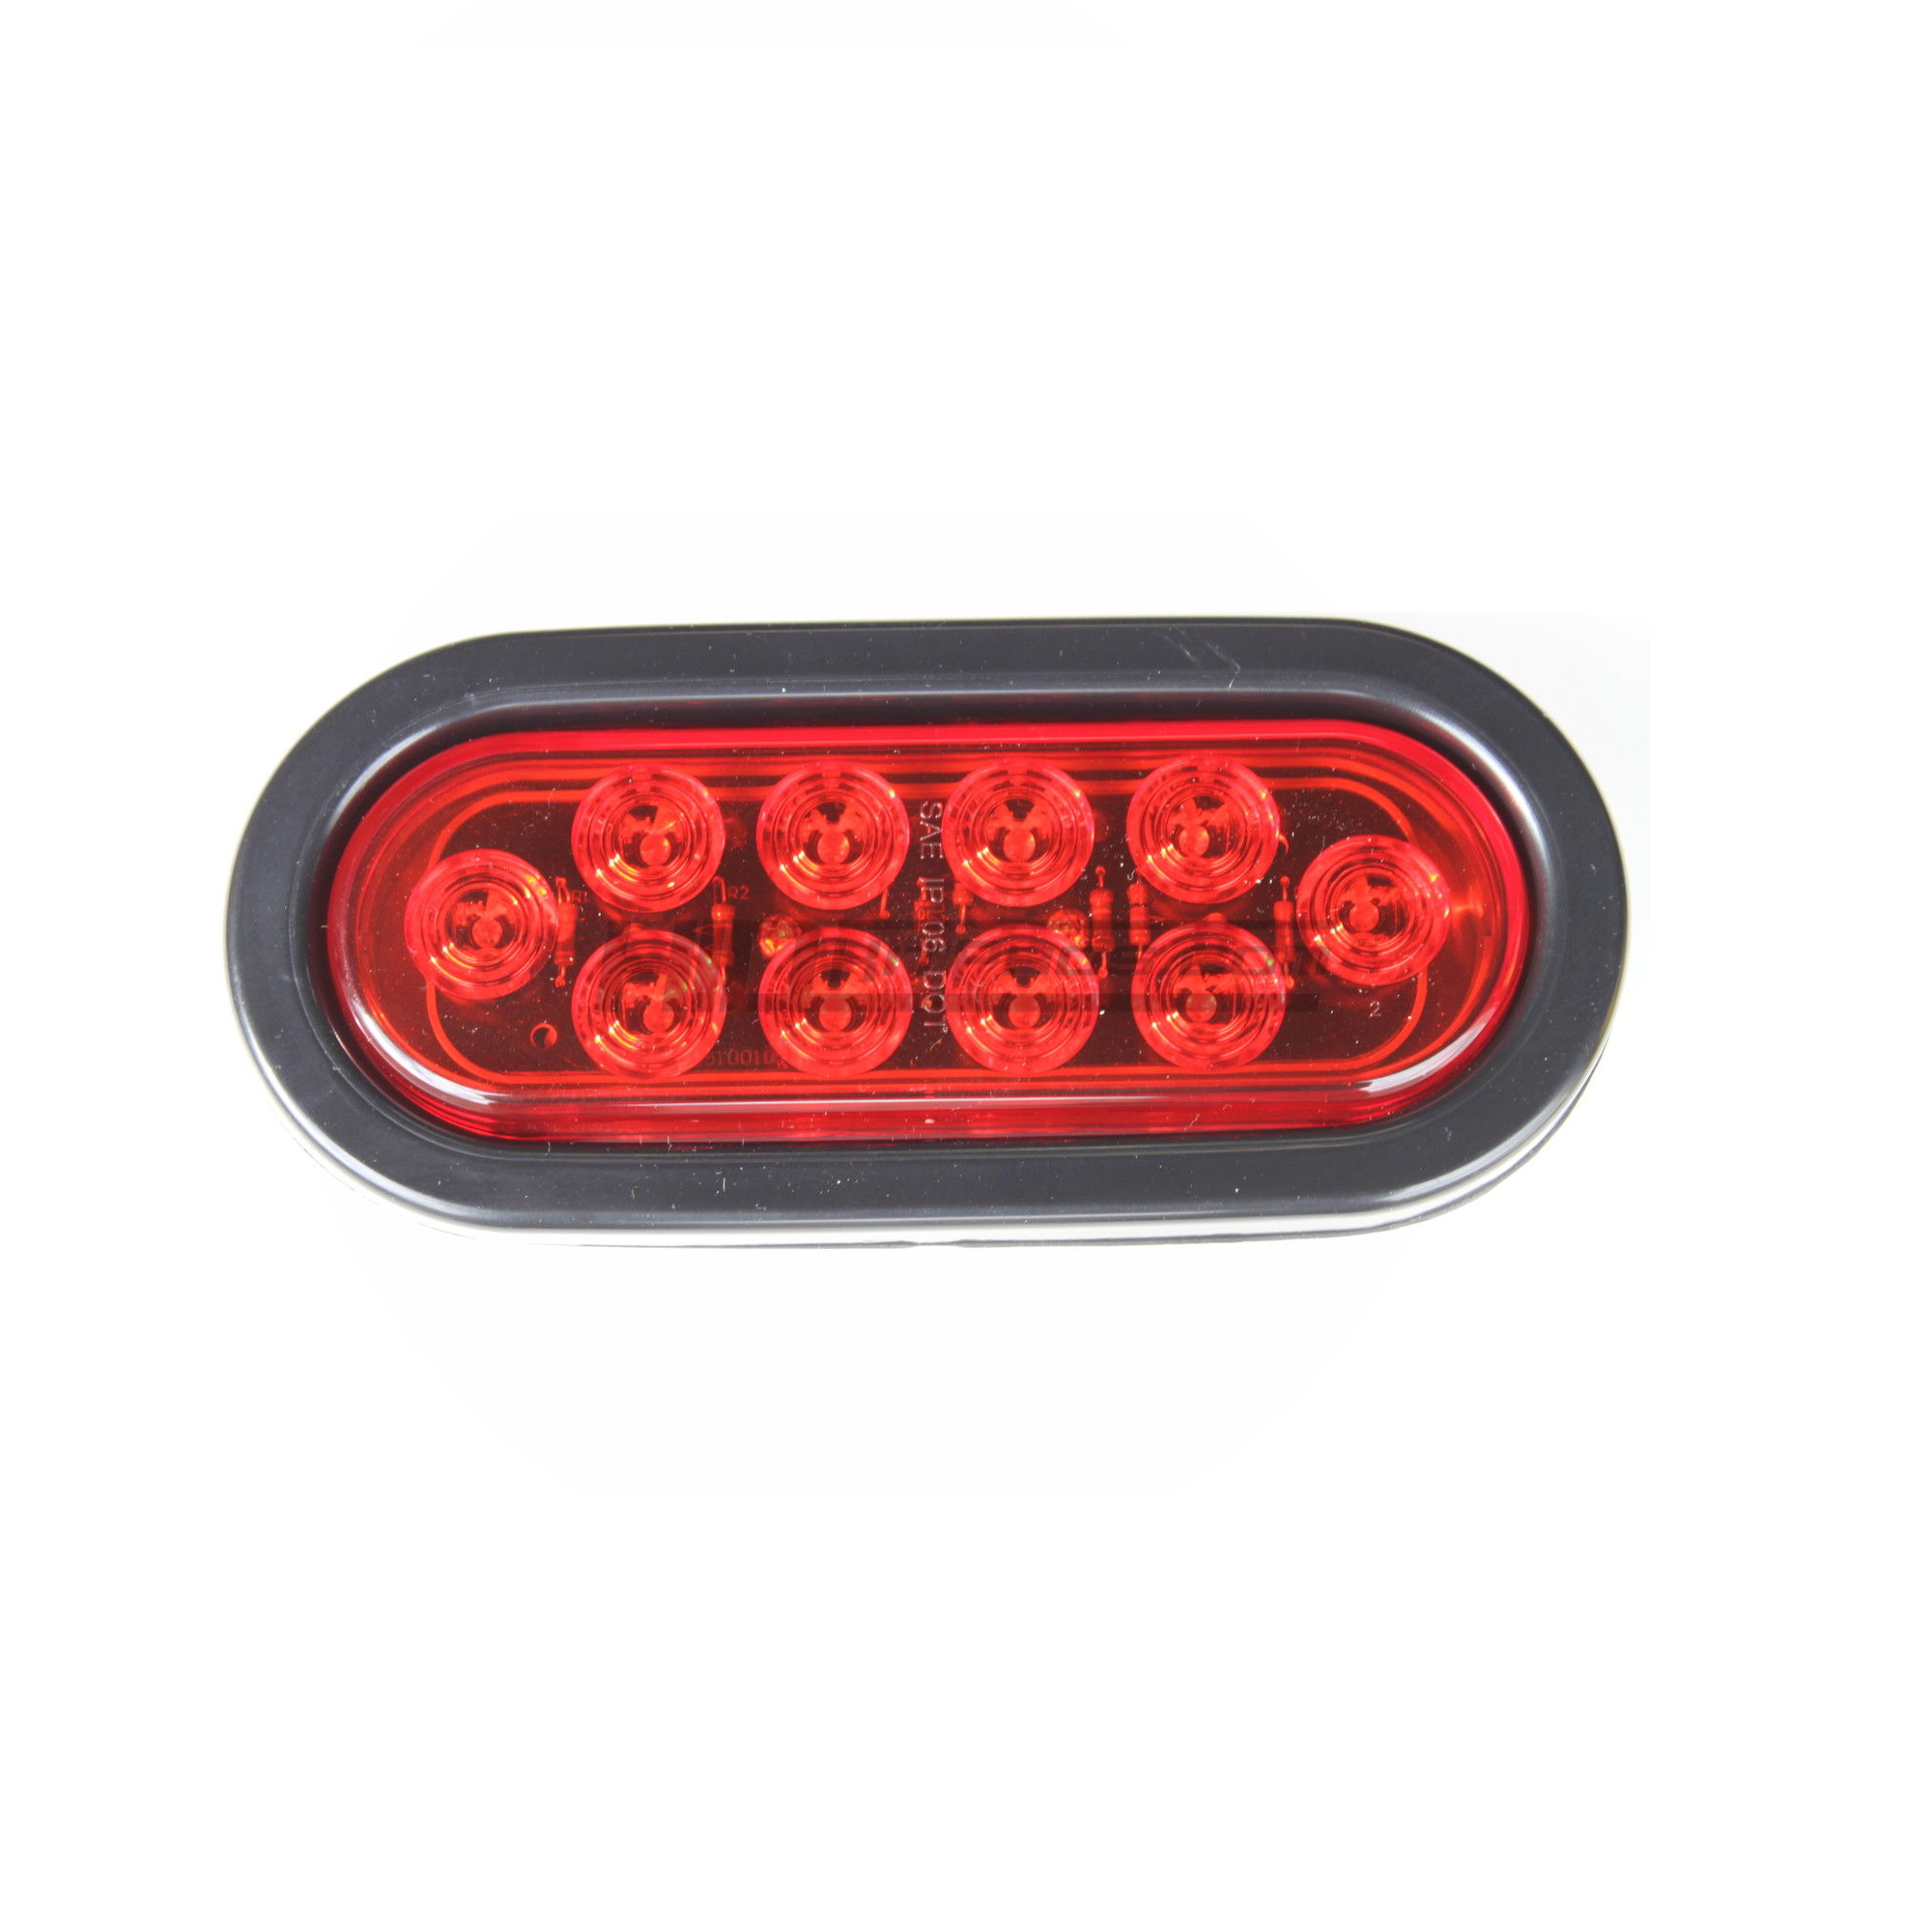 Red 6 Oval Truck Trailer Flush Led Stop Turn Signal Light Hid Quality Wire Kit 4 Pole Wiring For Pros